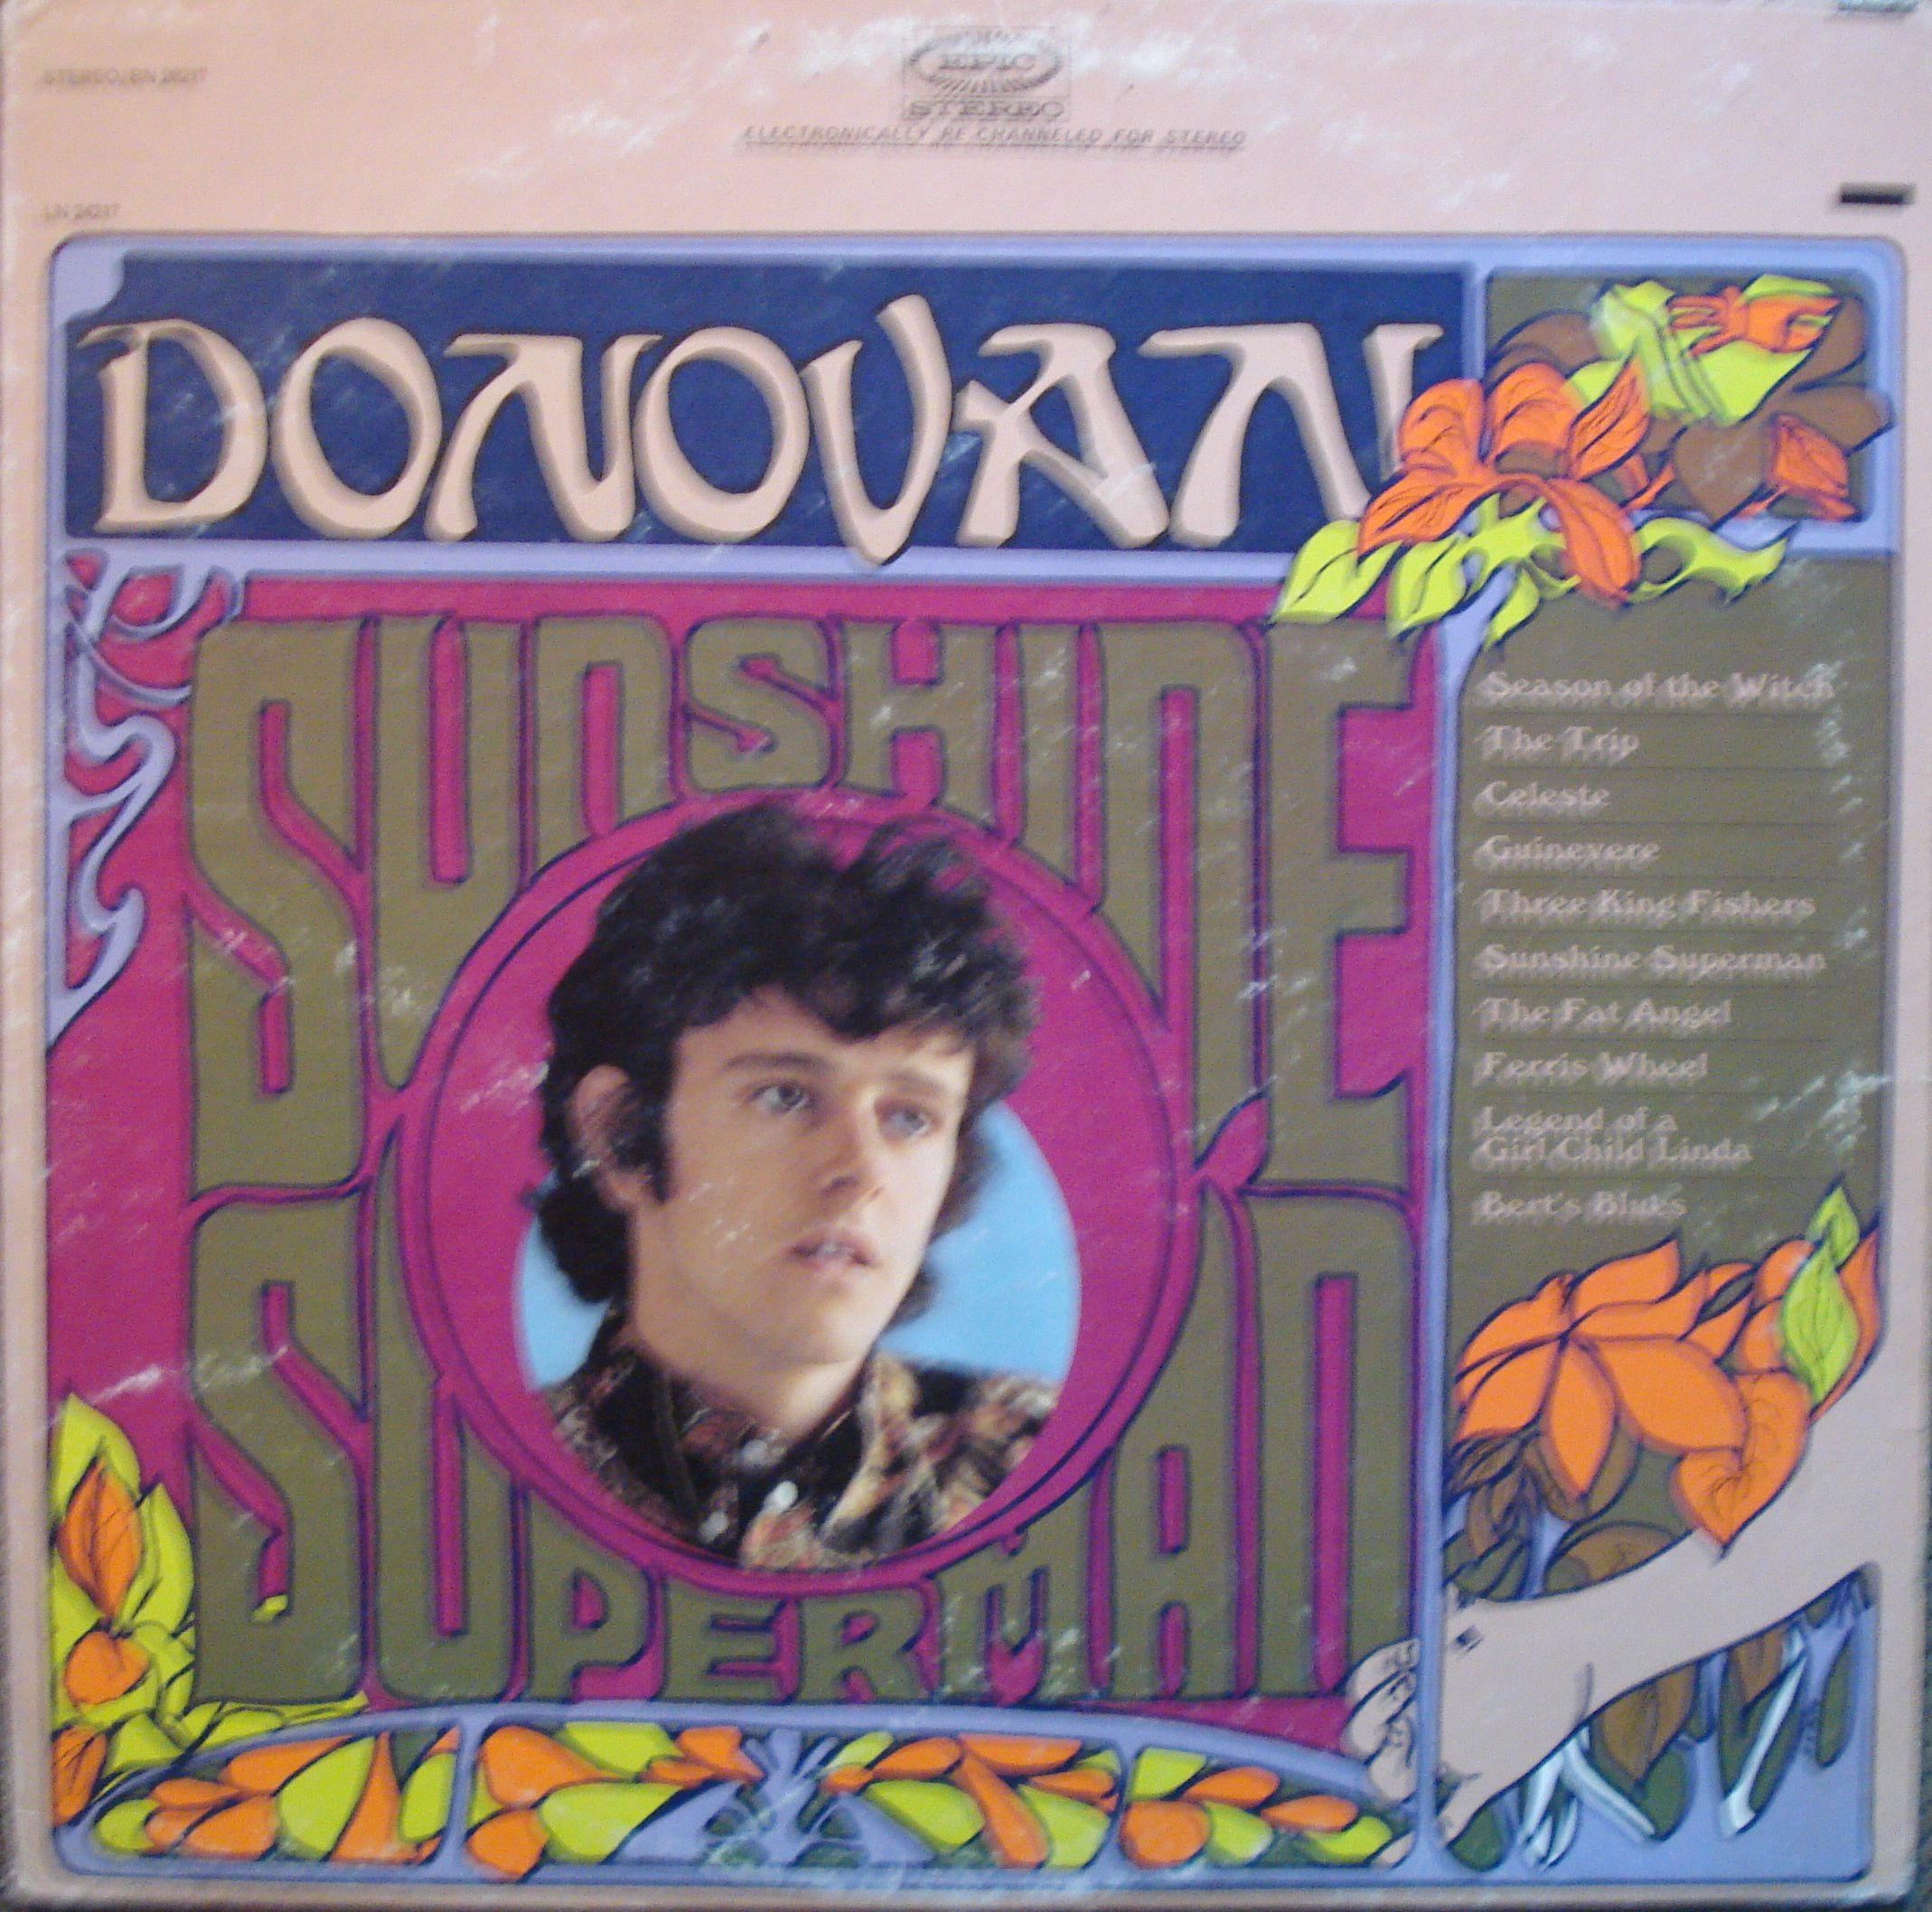 Sunshine Superman to Sunshine Superman